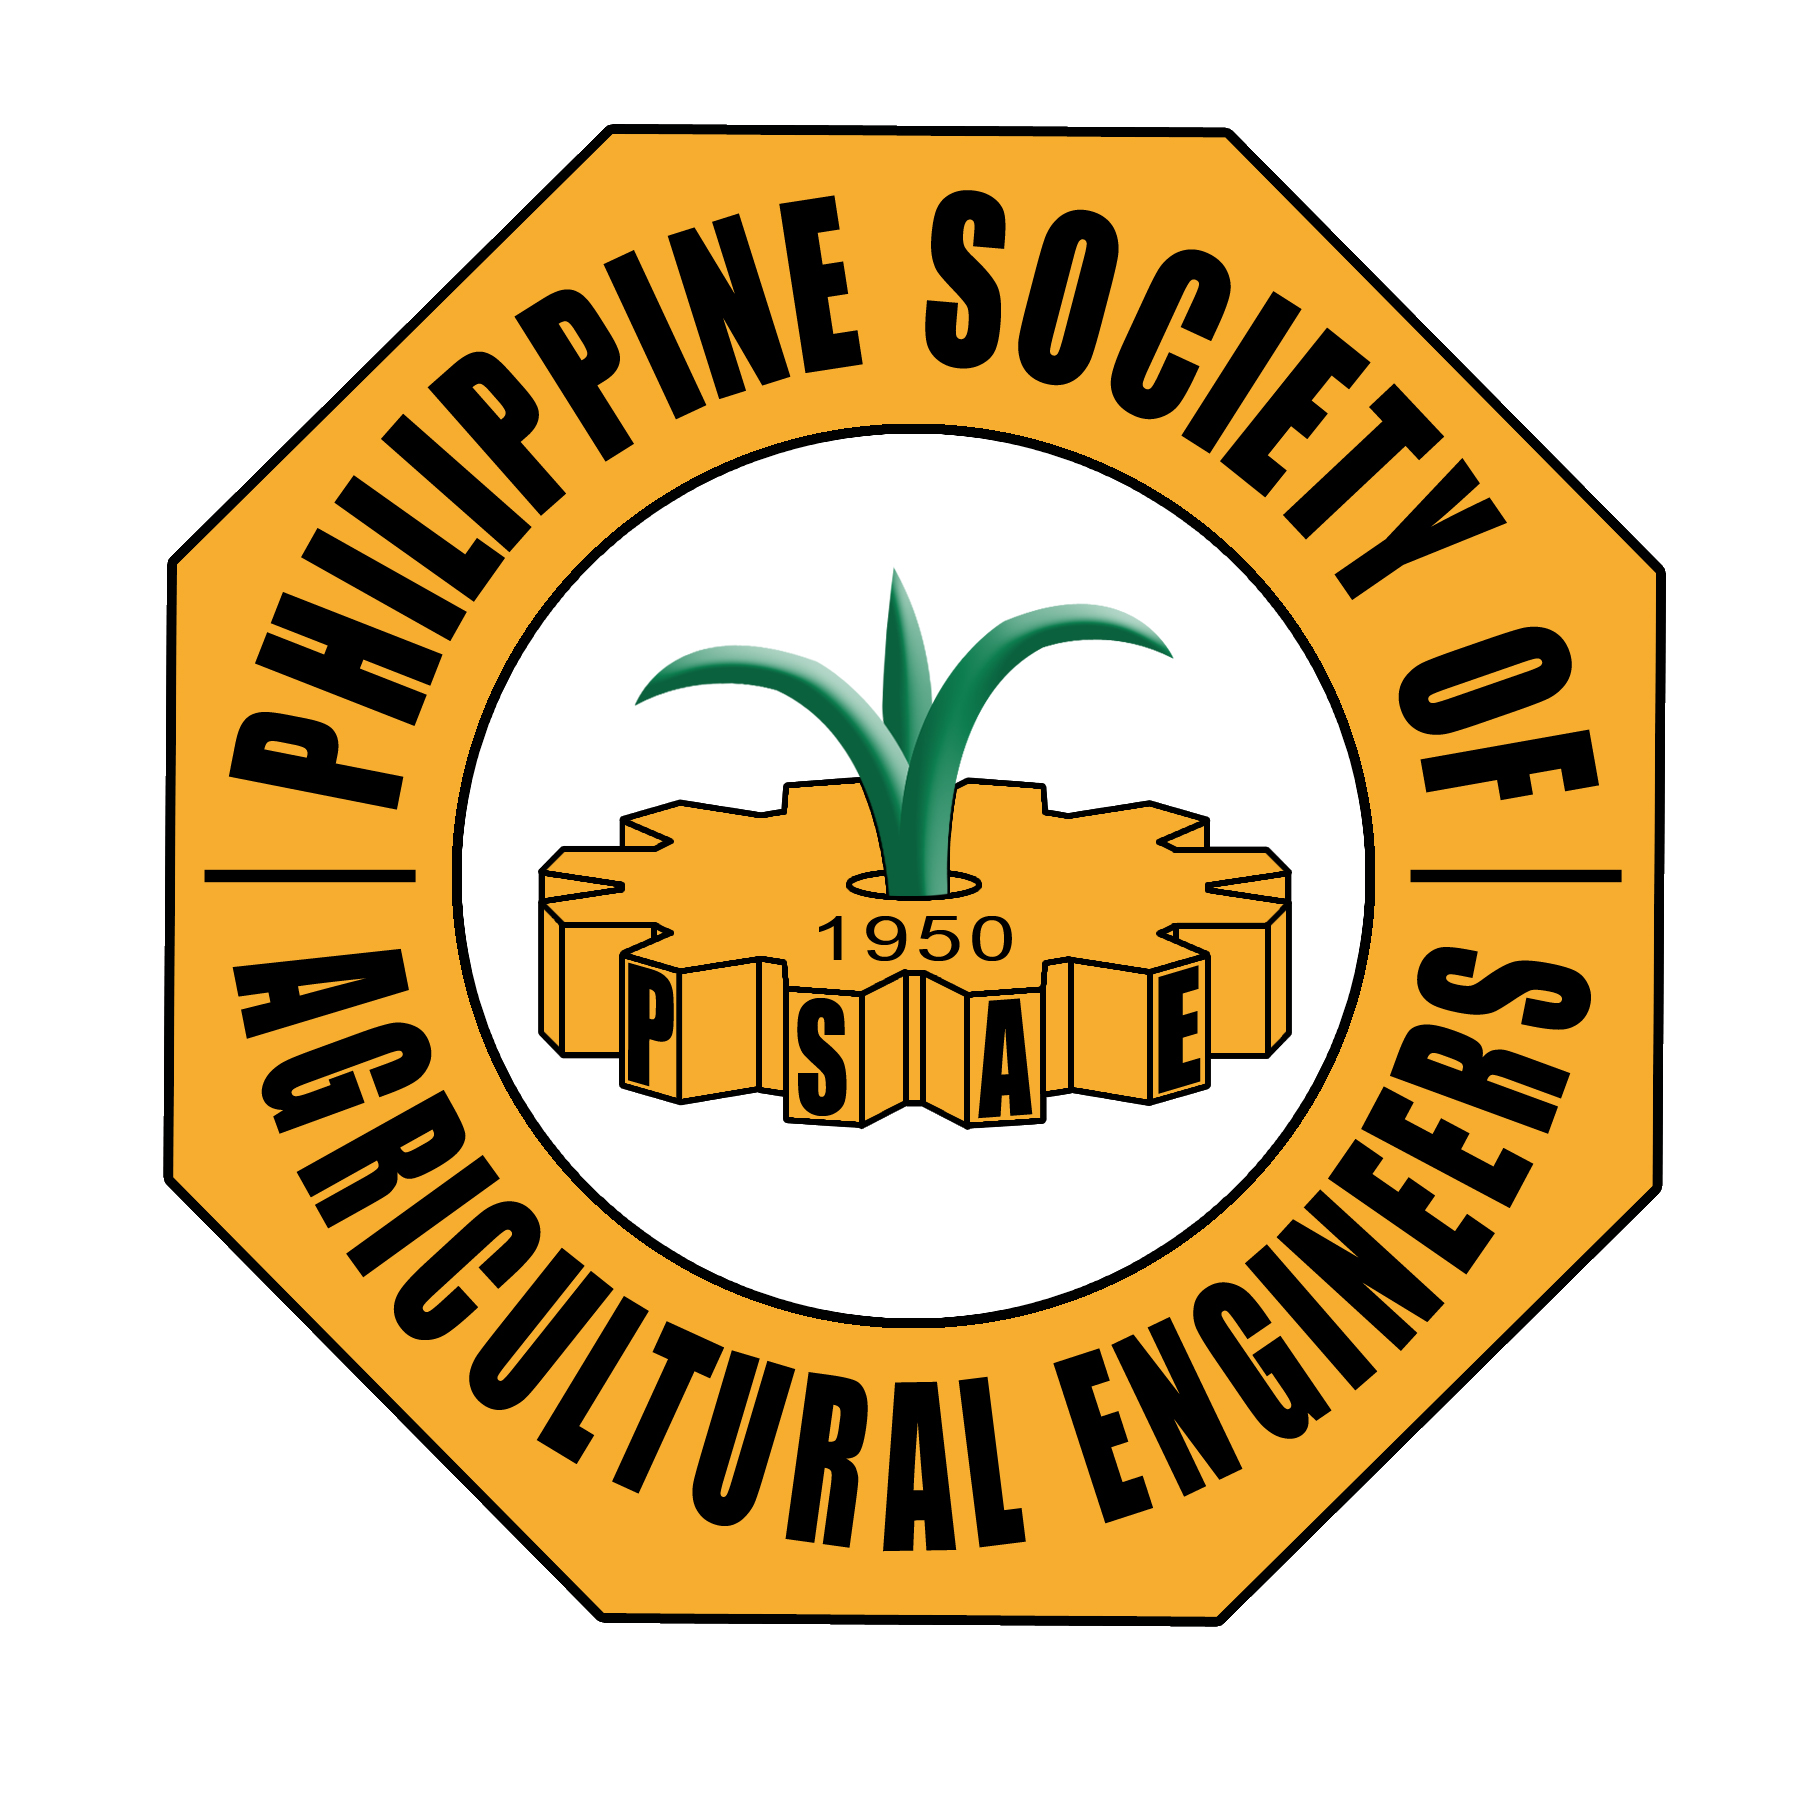 Philippine society of engineers. Engineer clipart agricultural engineering